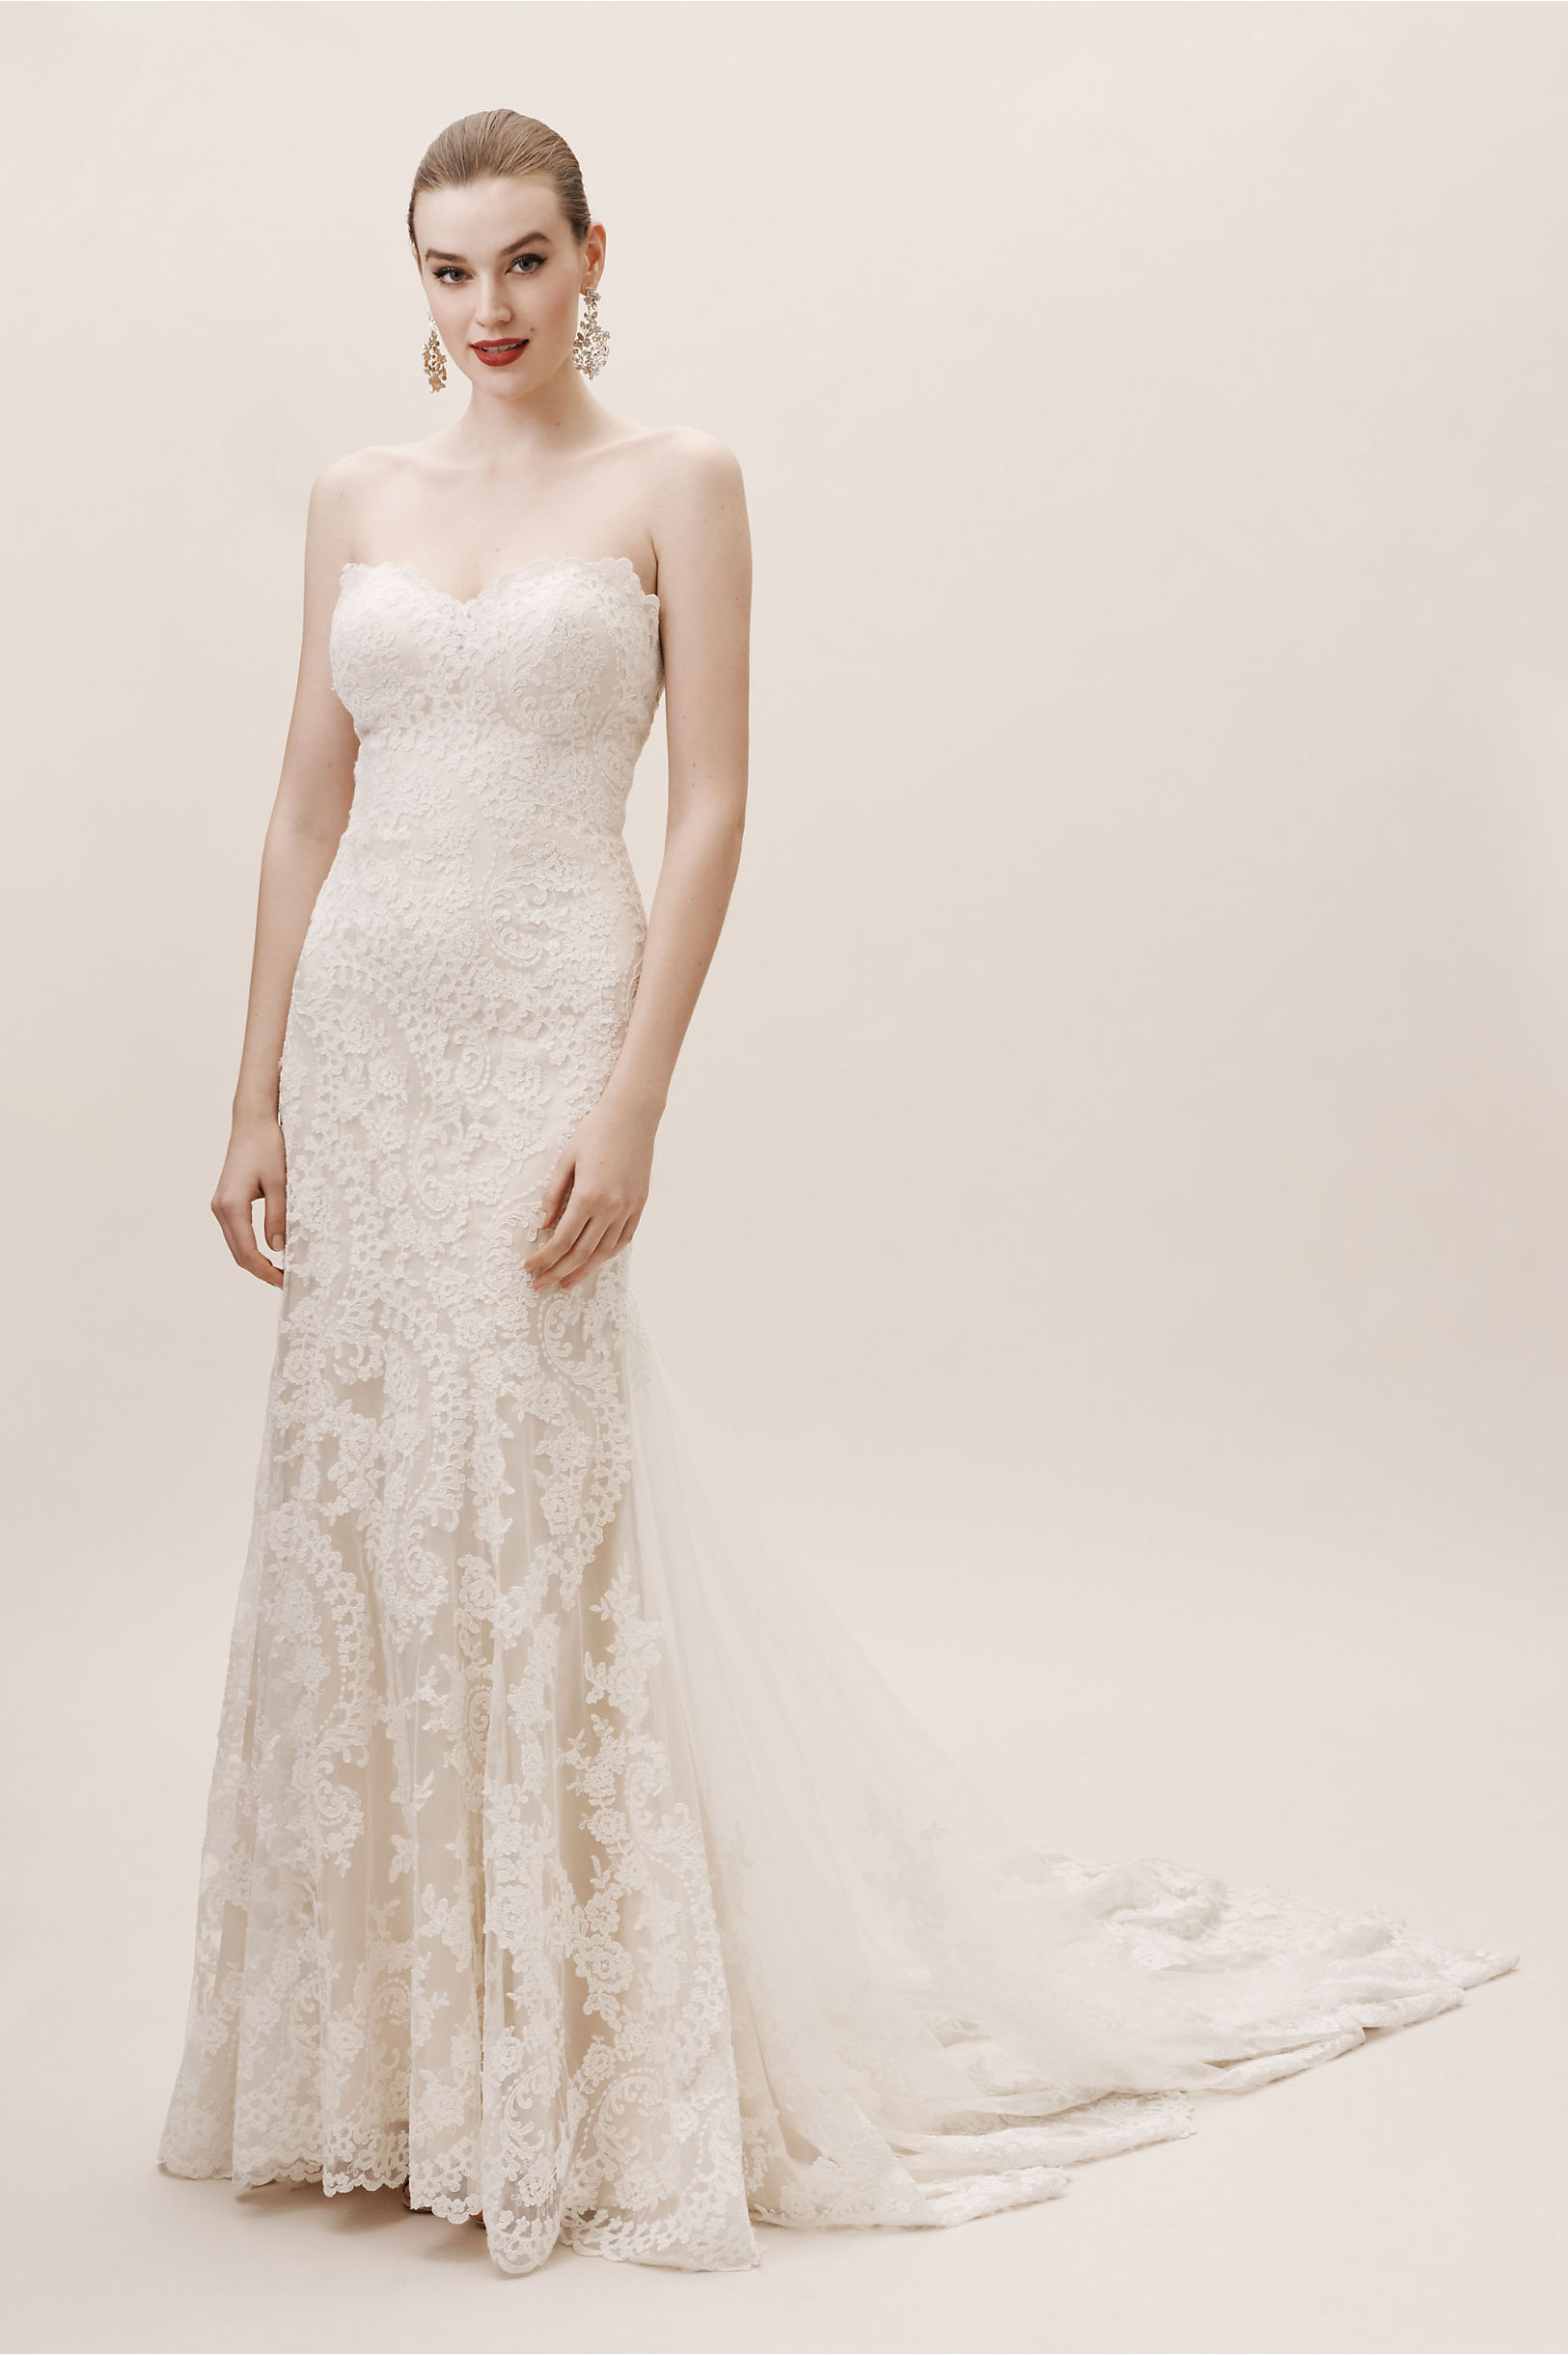 Lace Wedding Dresses | Vintage Lace Gowns | BHLDN